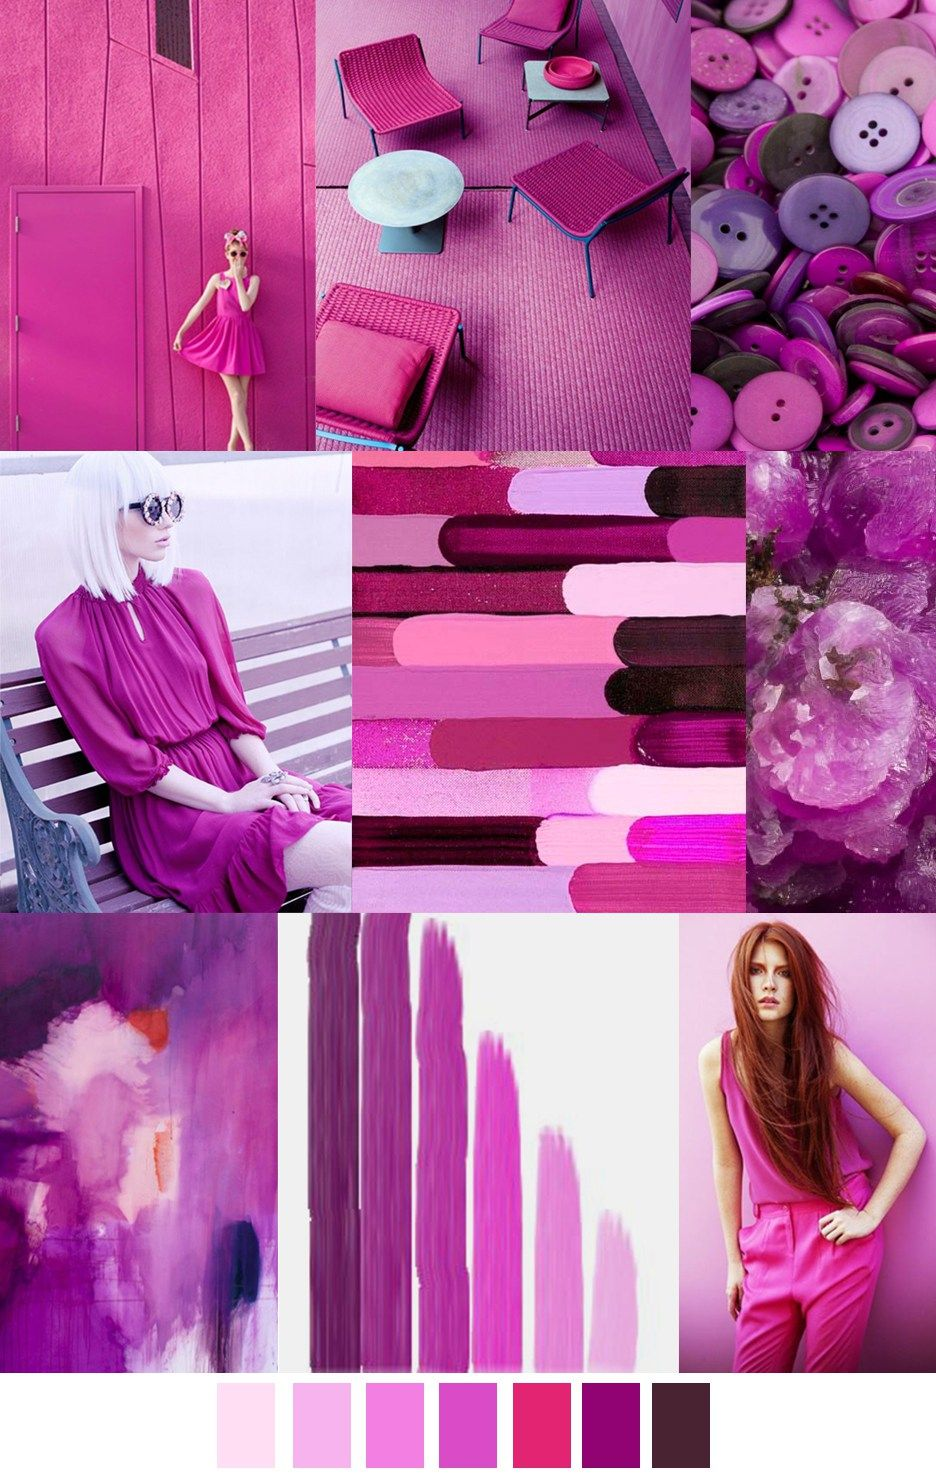 Lord of the apes trend 2016 2017 pinterest farben - Magenta wandfarbe ...